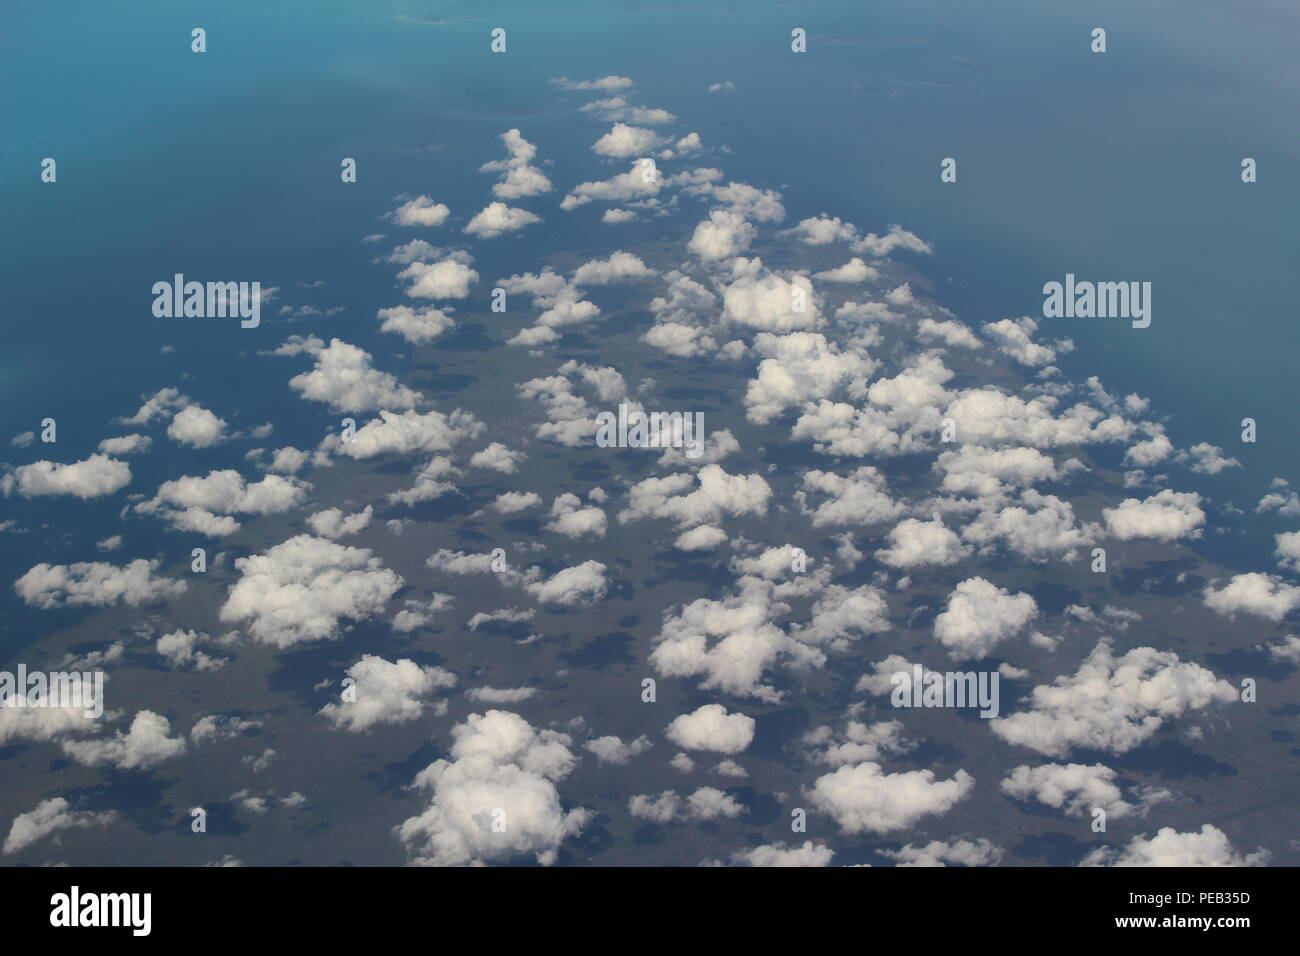 Aerial view of low cloud cover above the Caribbean Sea. - Stock Image